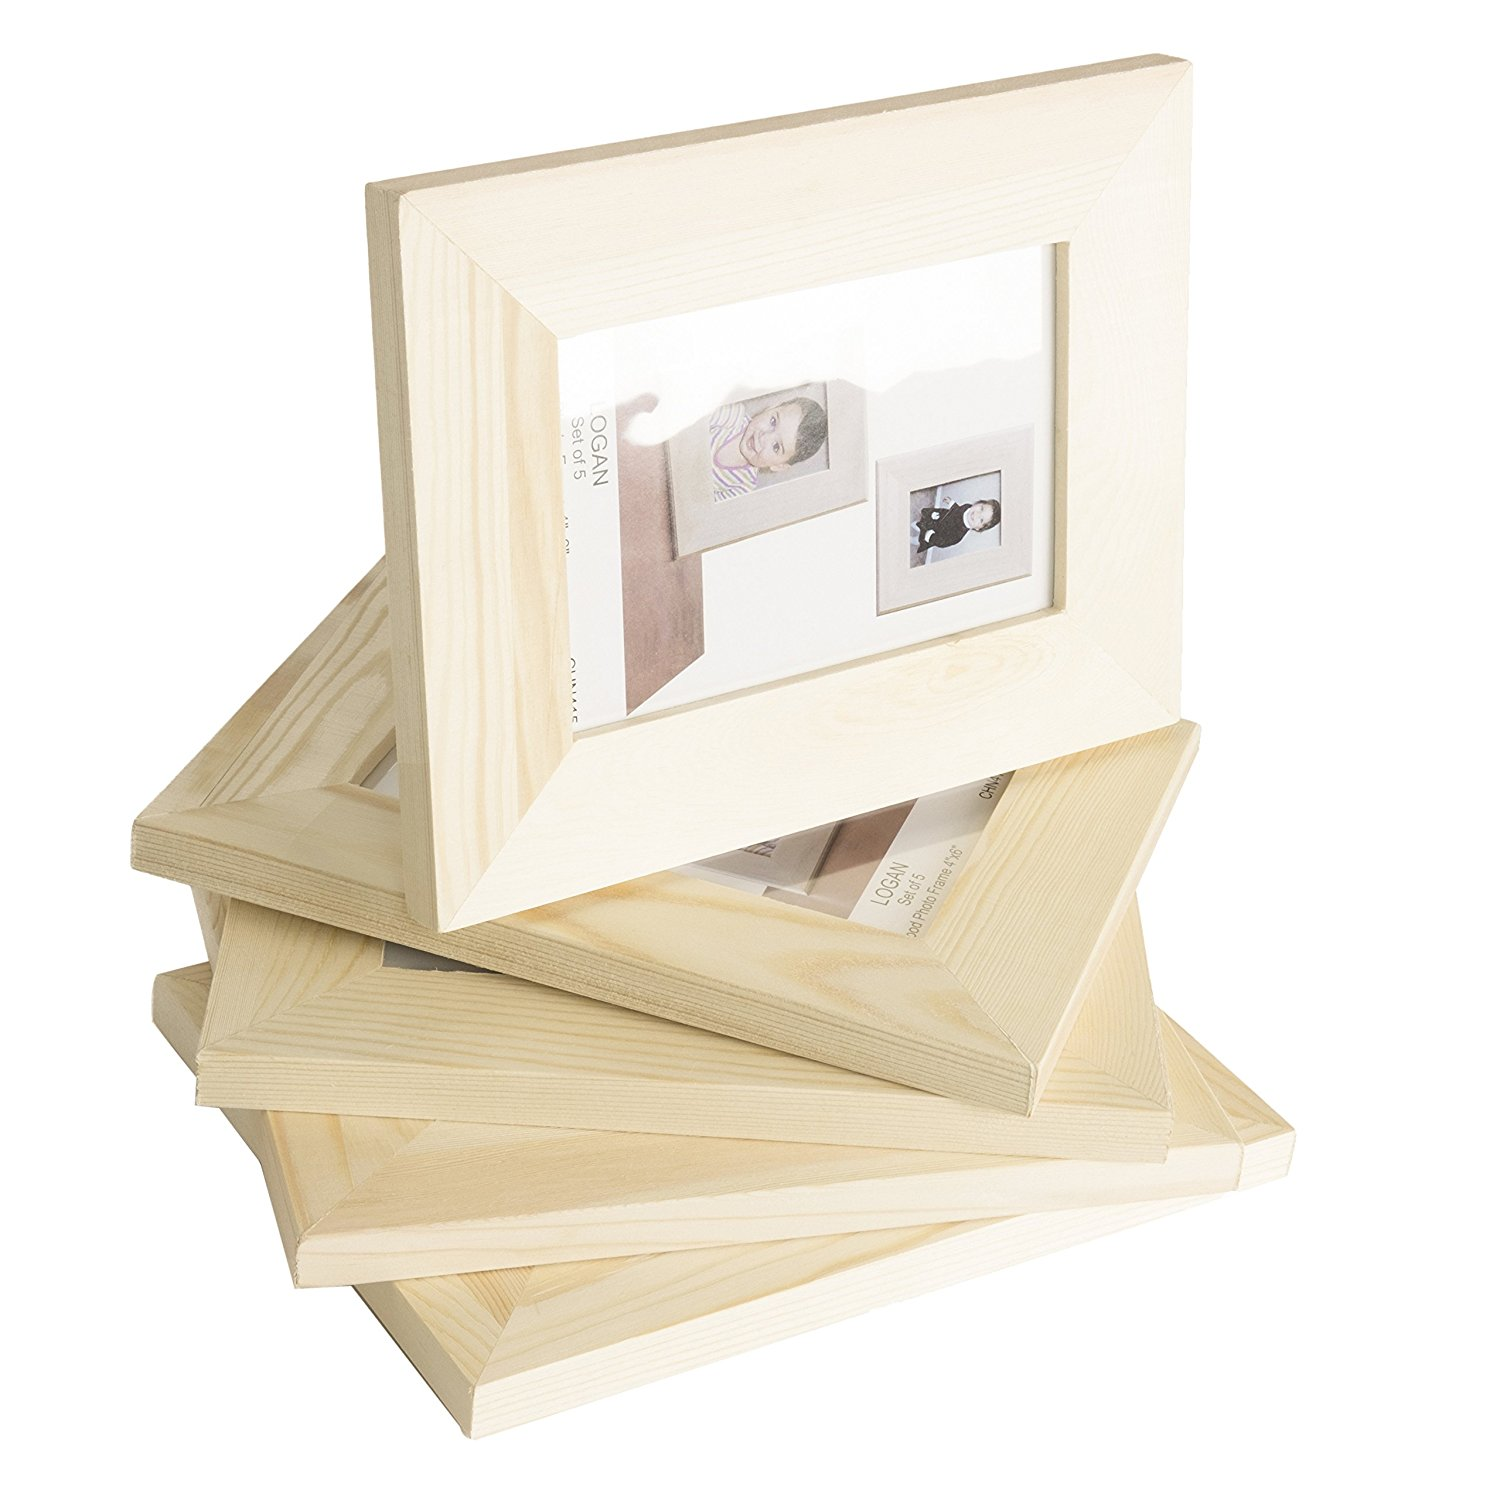 Solid DIY Unfinished Wood Picture Frame 4x6 Inches , Great for Kid's Art Craft Projects Set of 5